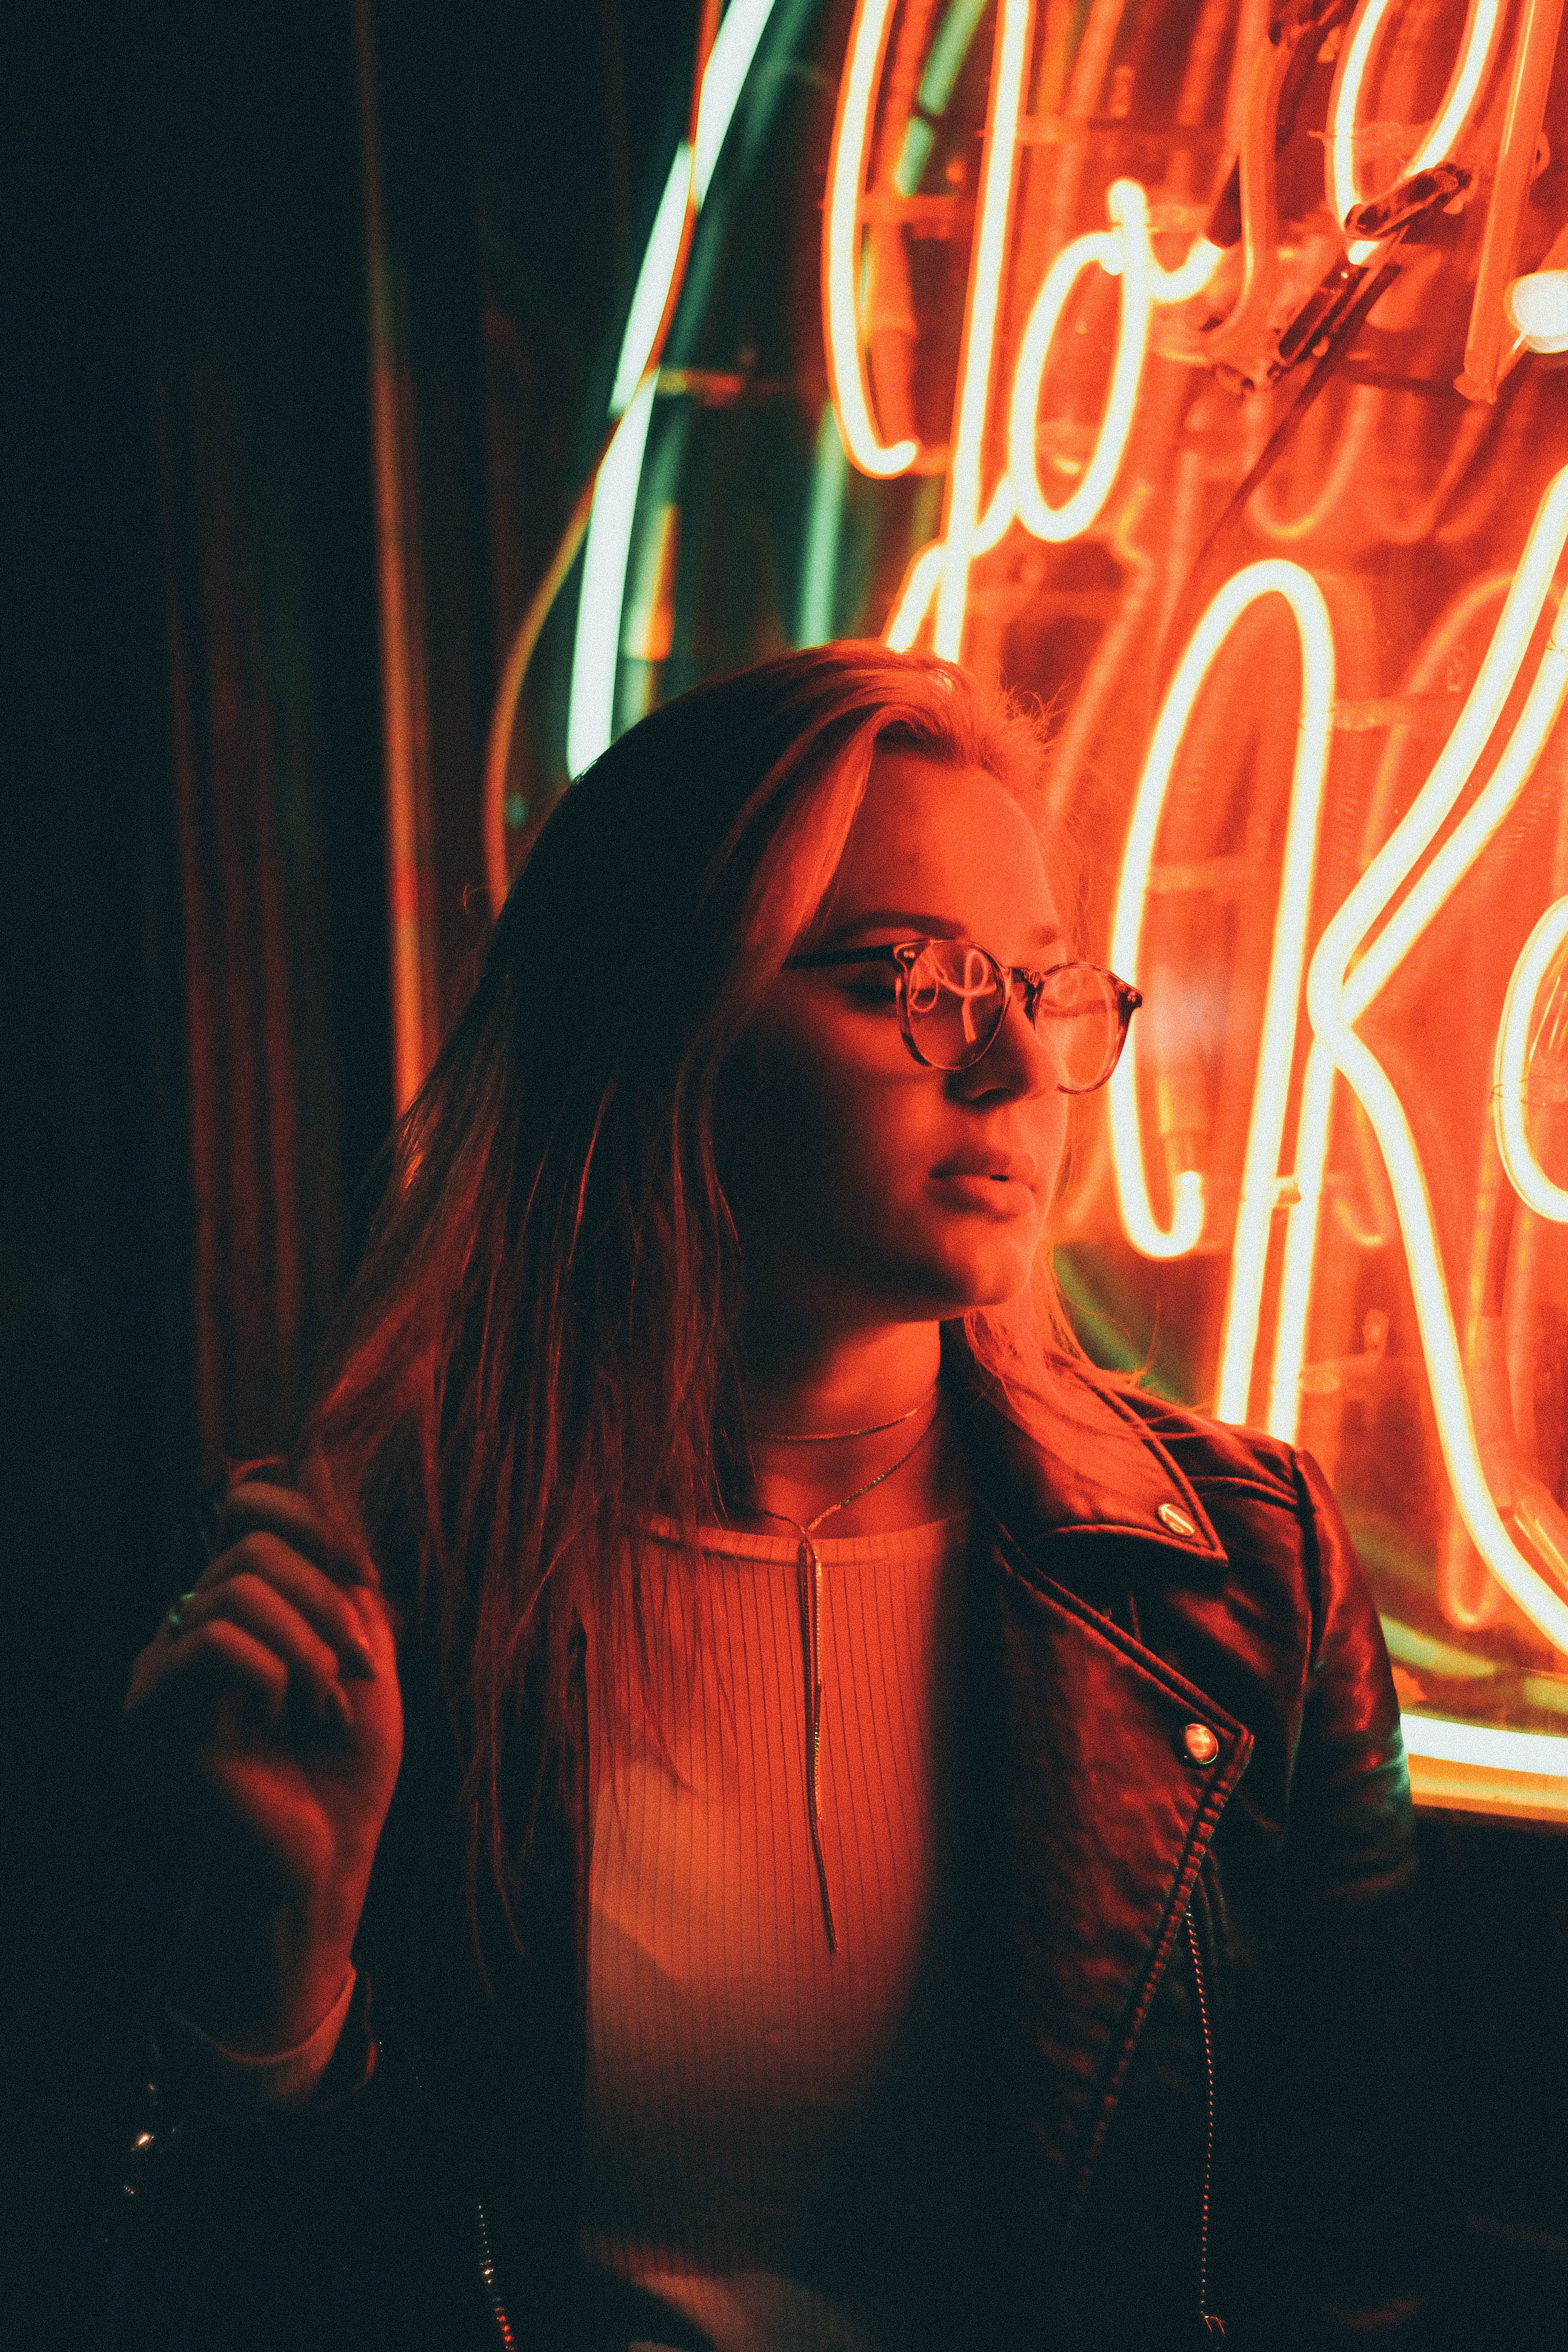 Woman In Denim Jacket Near Neon Signage · Free Stock Photo